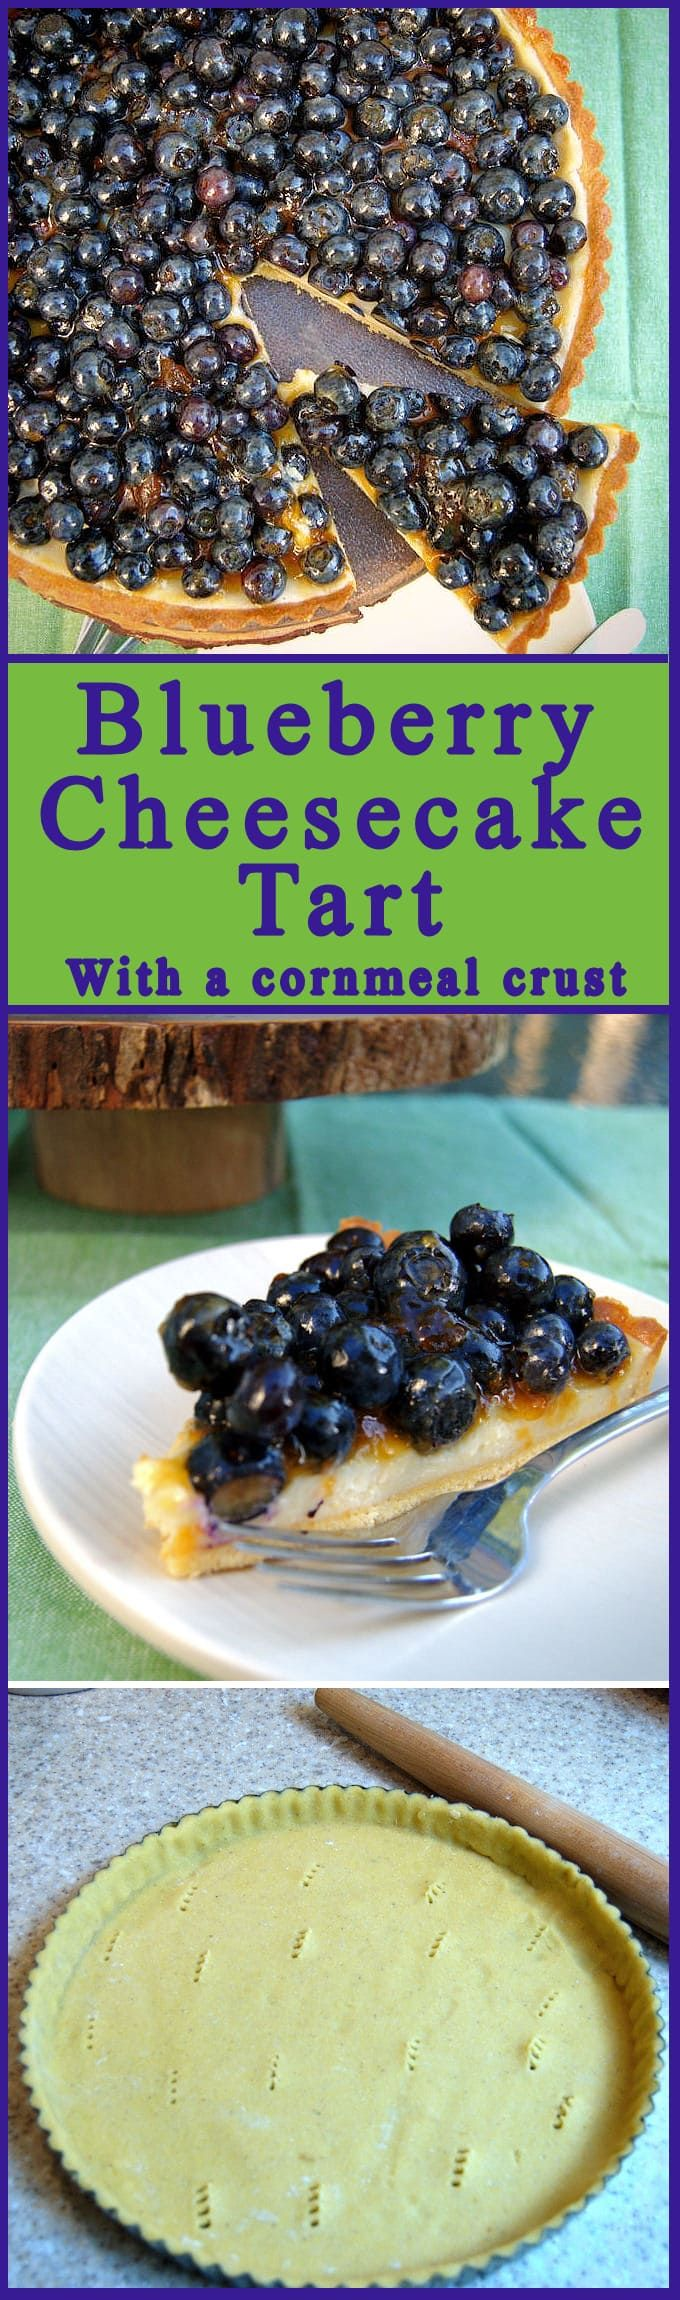 A crunchy cornmeal crust filled with creamy cheesecake filling and topped with fresh blueberries. The perfect summer dessert looks impressive and is easy to make.